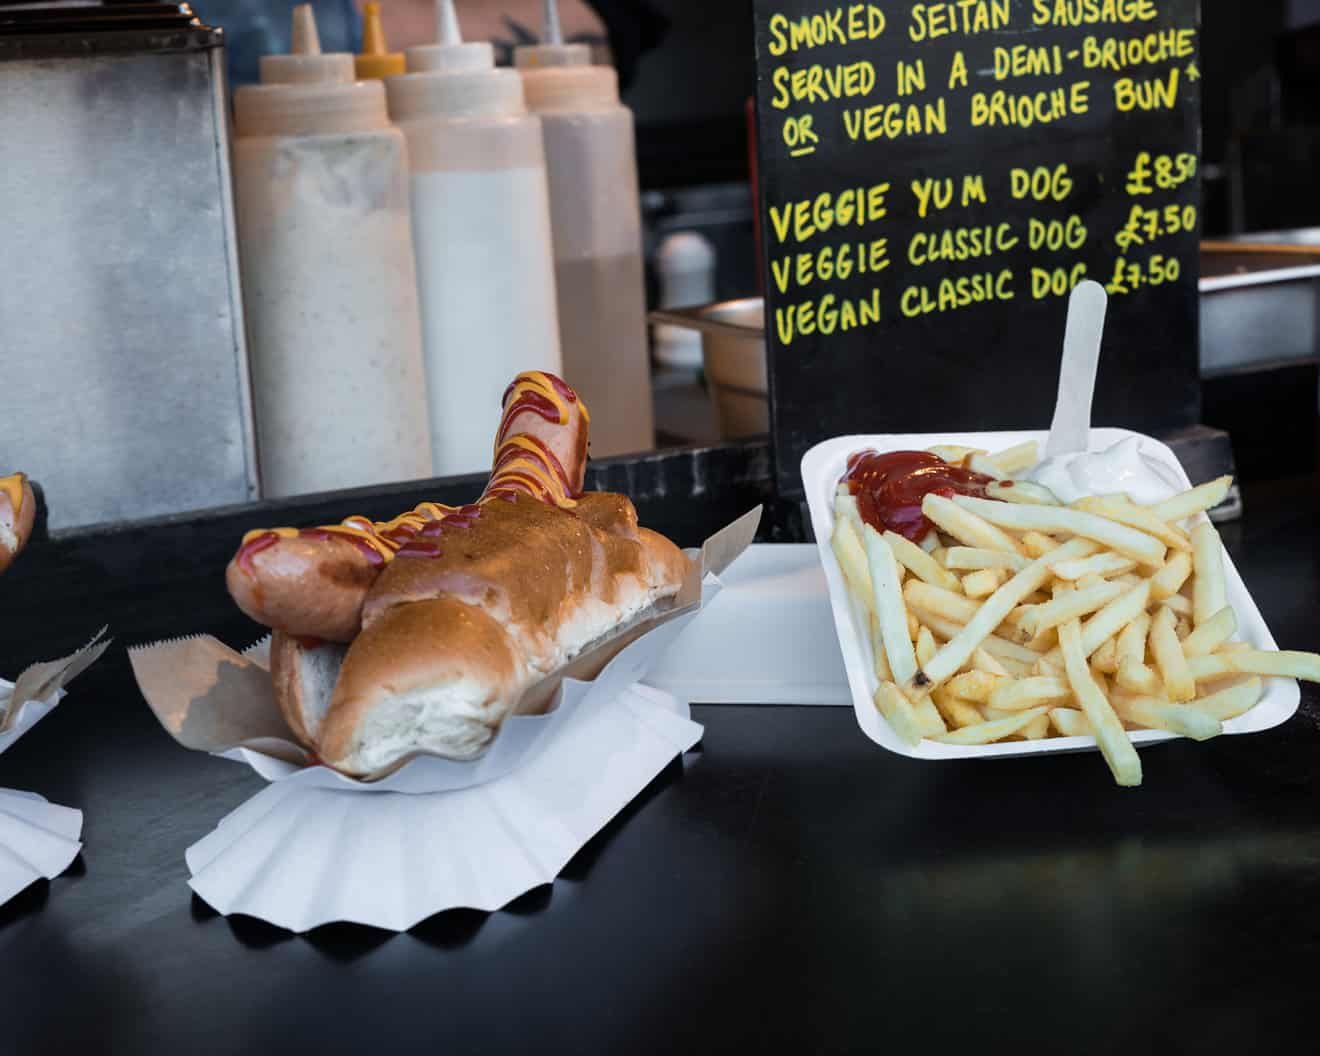 Vegan hot dog and french fries in Camden Town Market stand, London